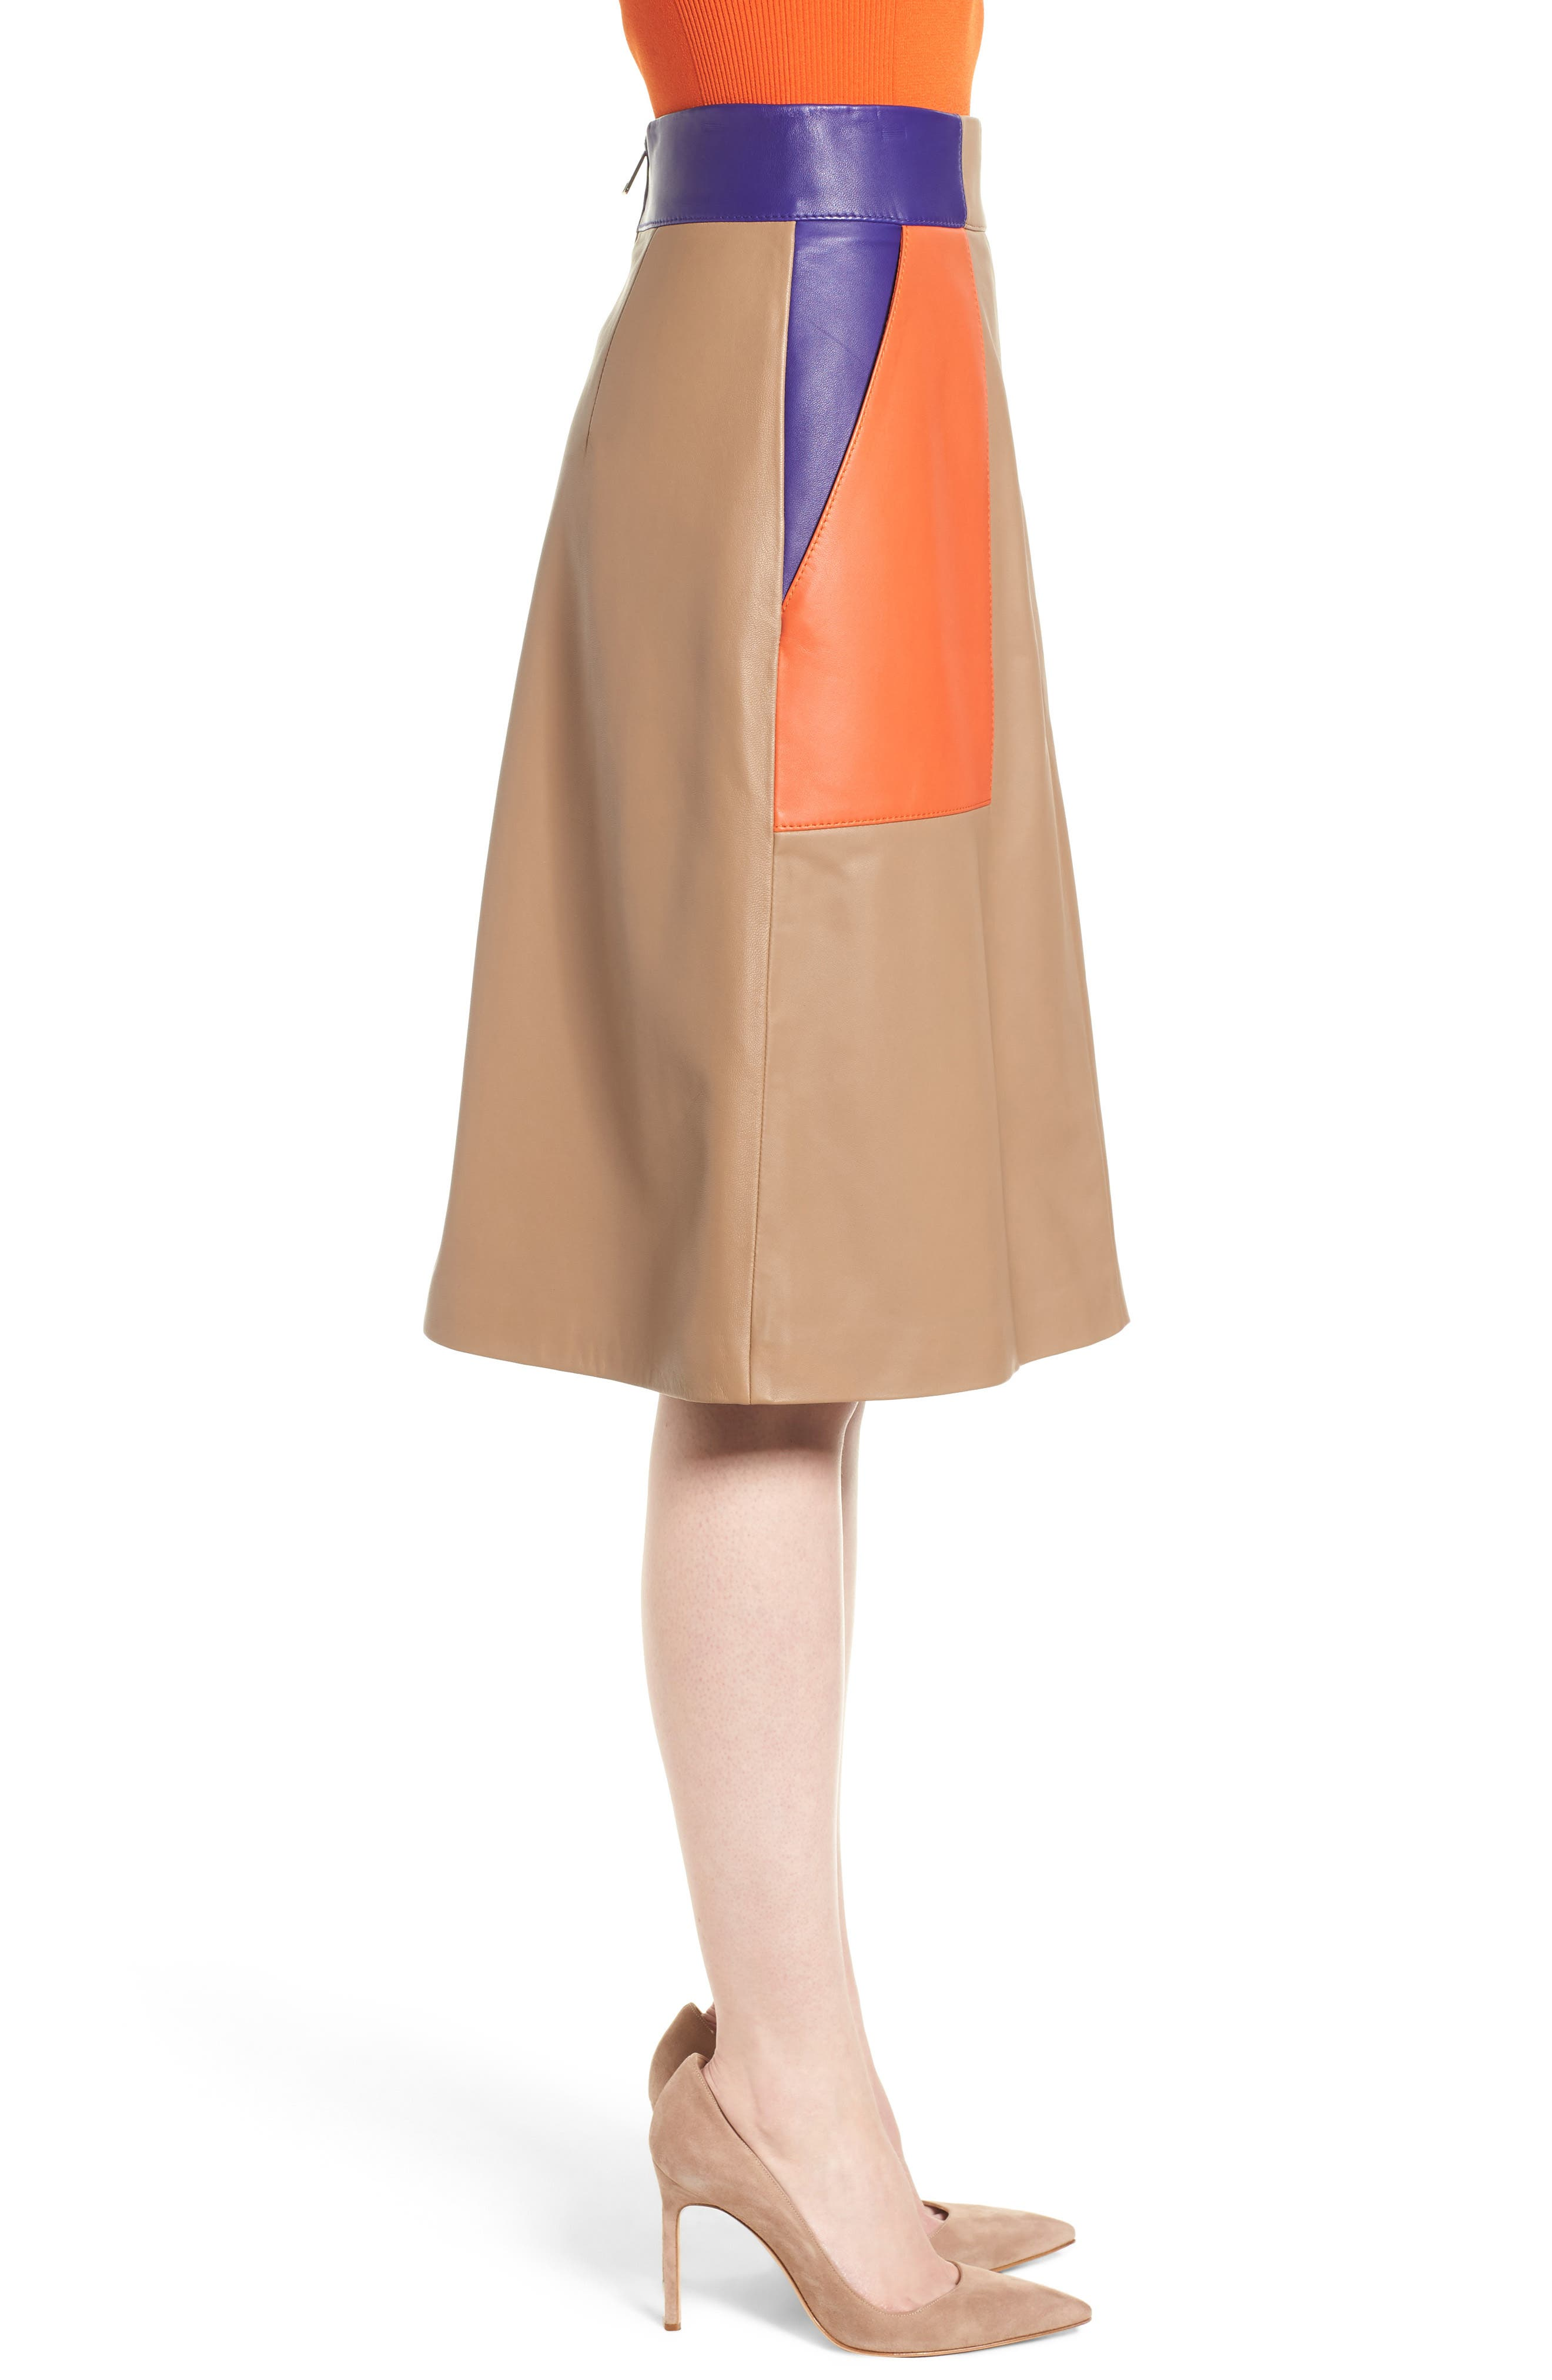 Seplea Colorblock Leather Skirt,                             Alternate thumbnail 3, color,                             264